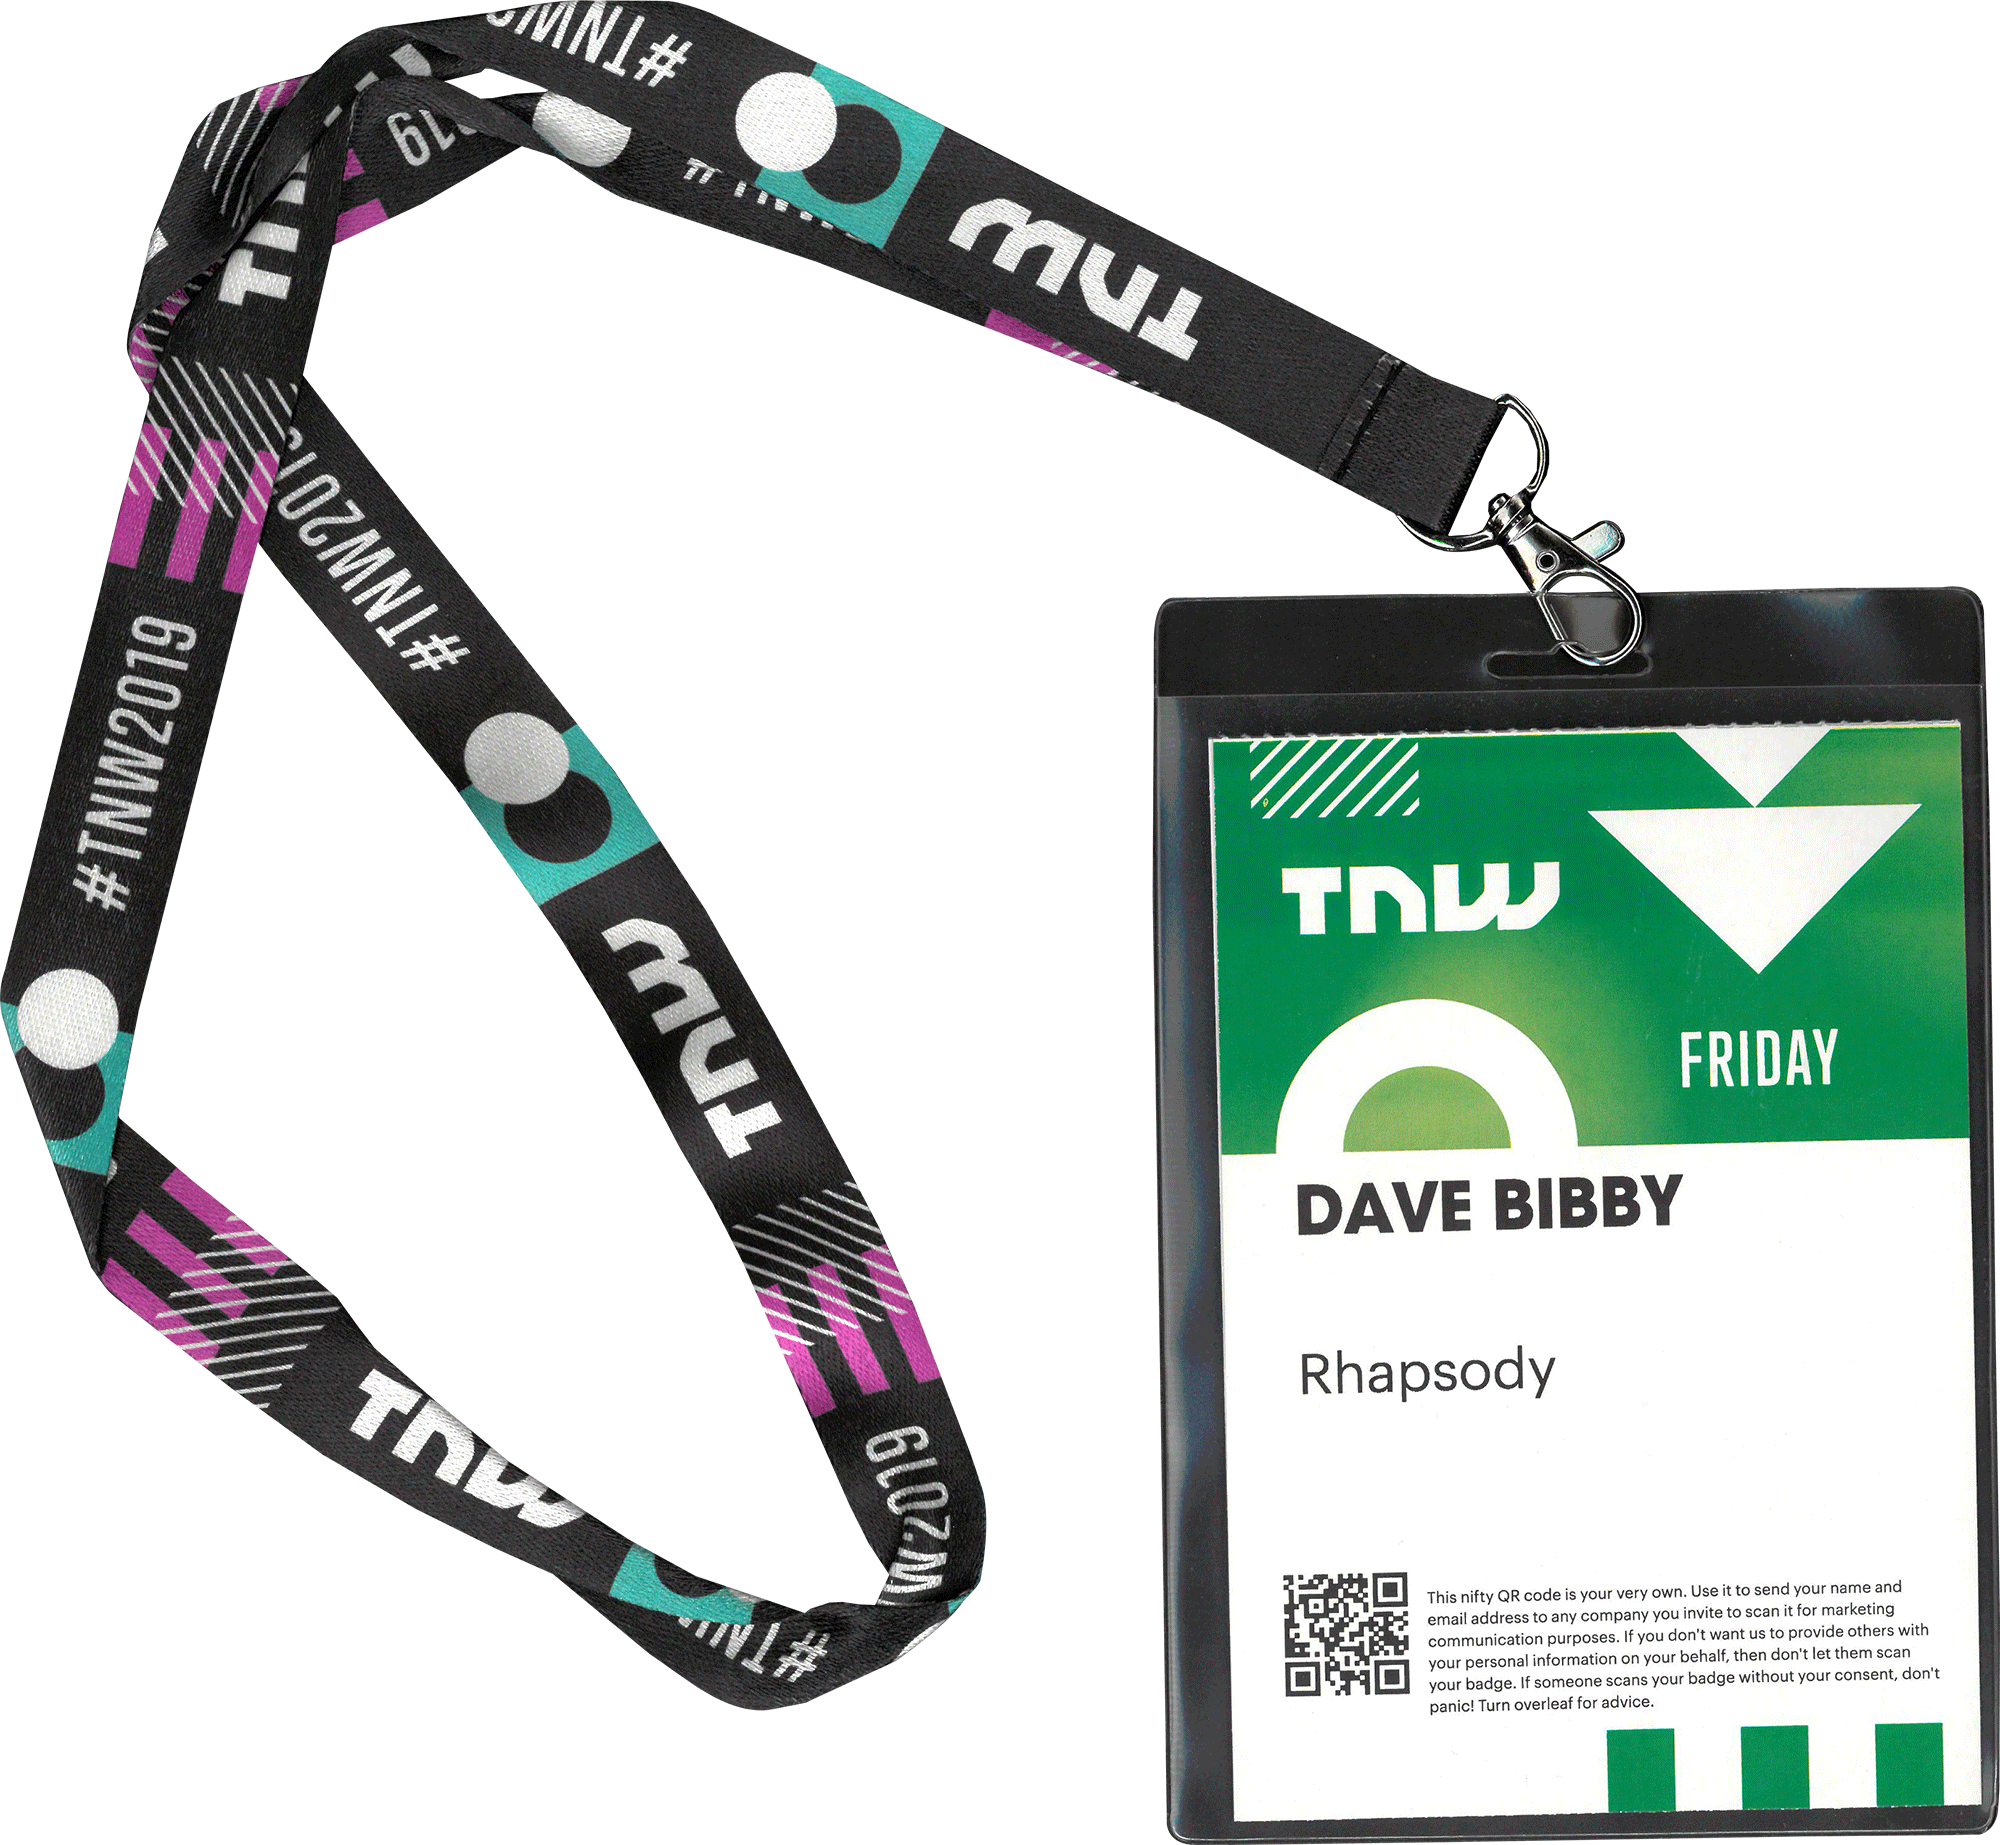 TNW 2019 Dave Bibby conference pass